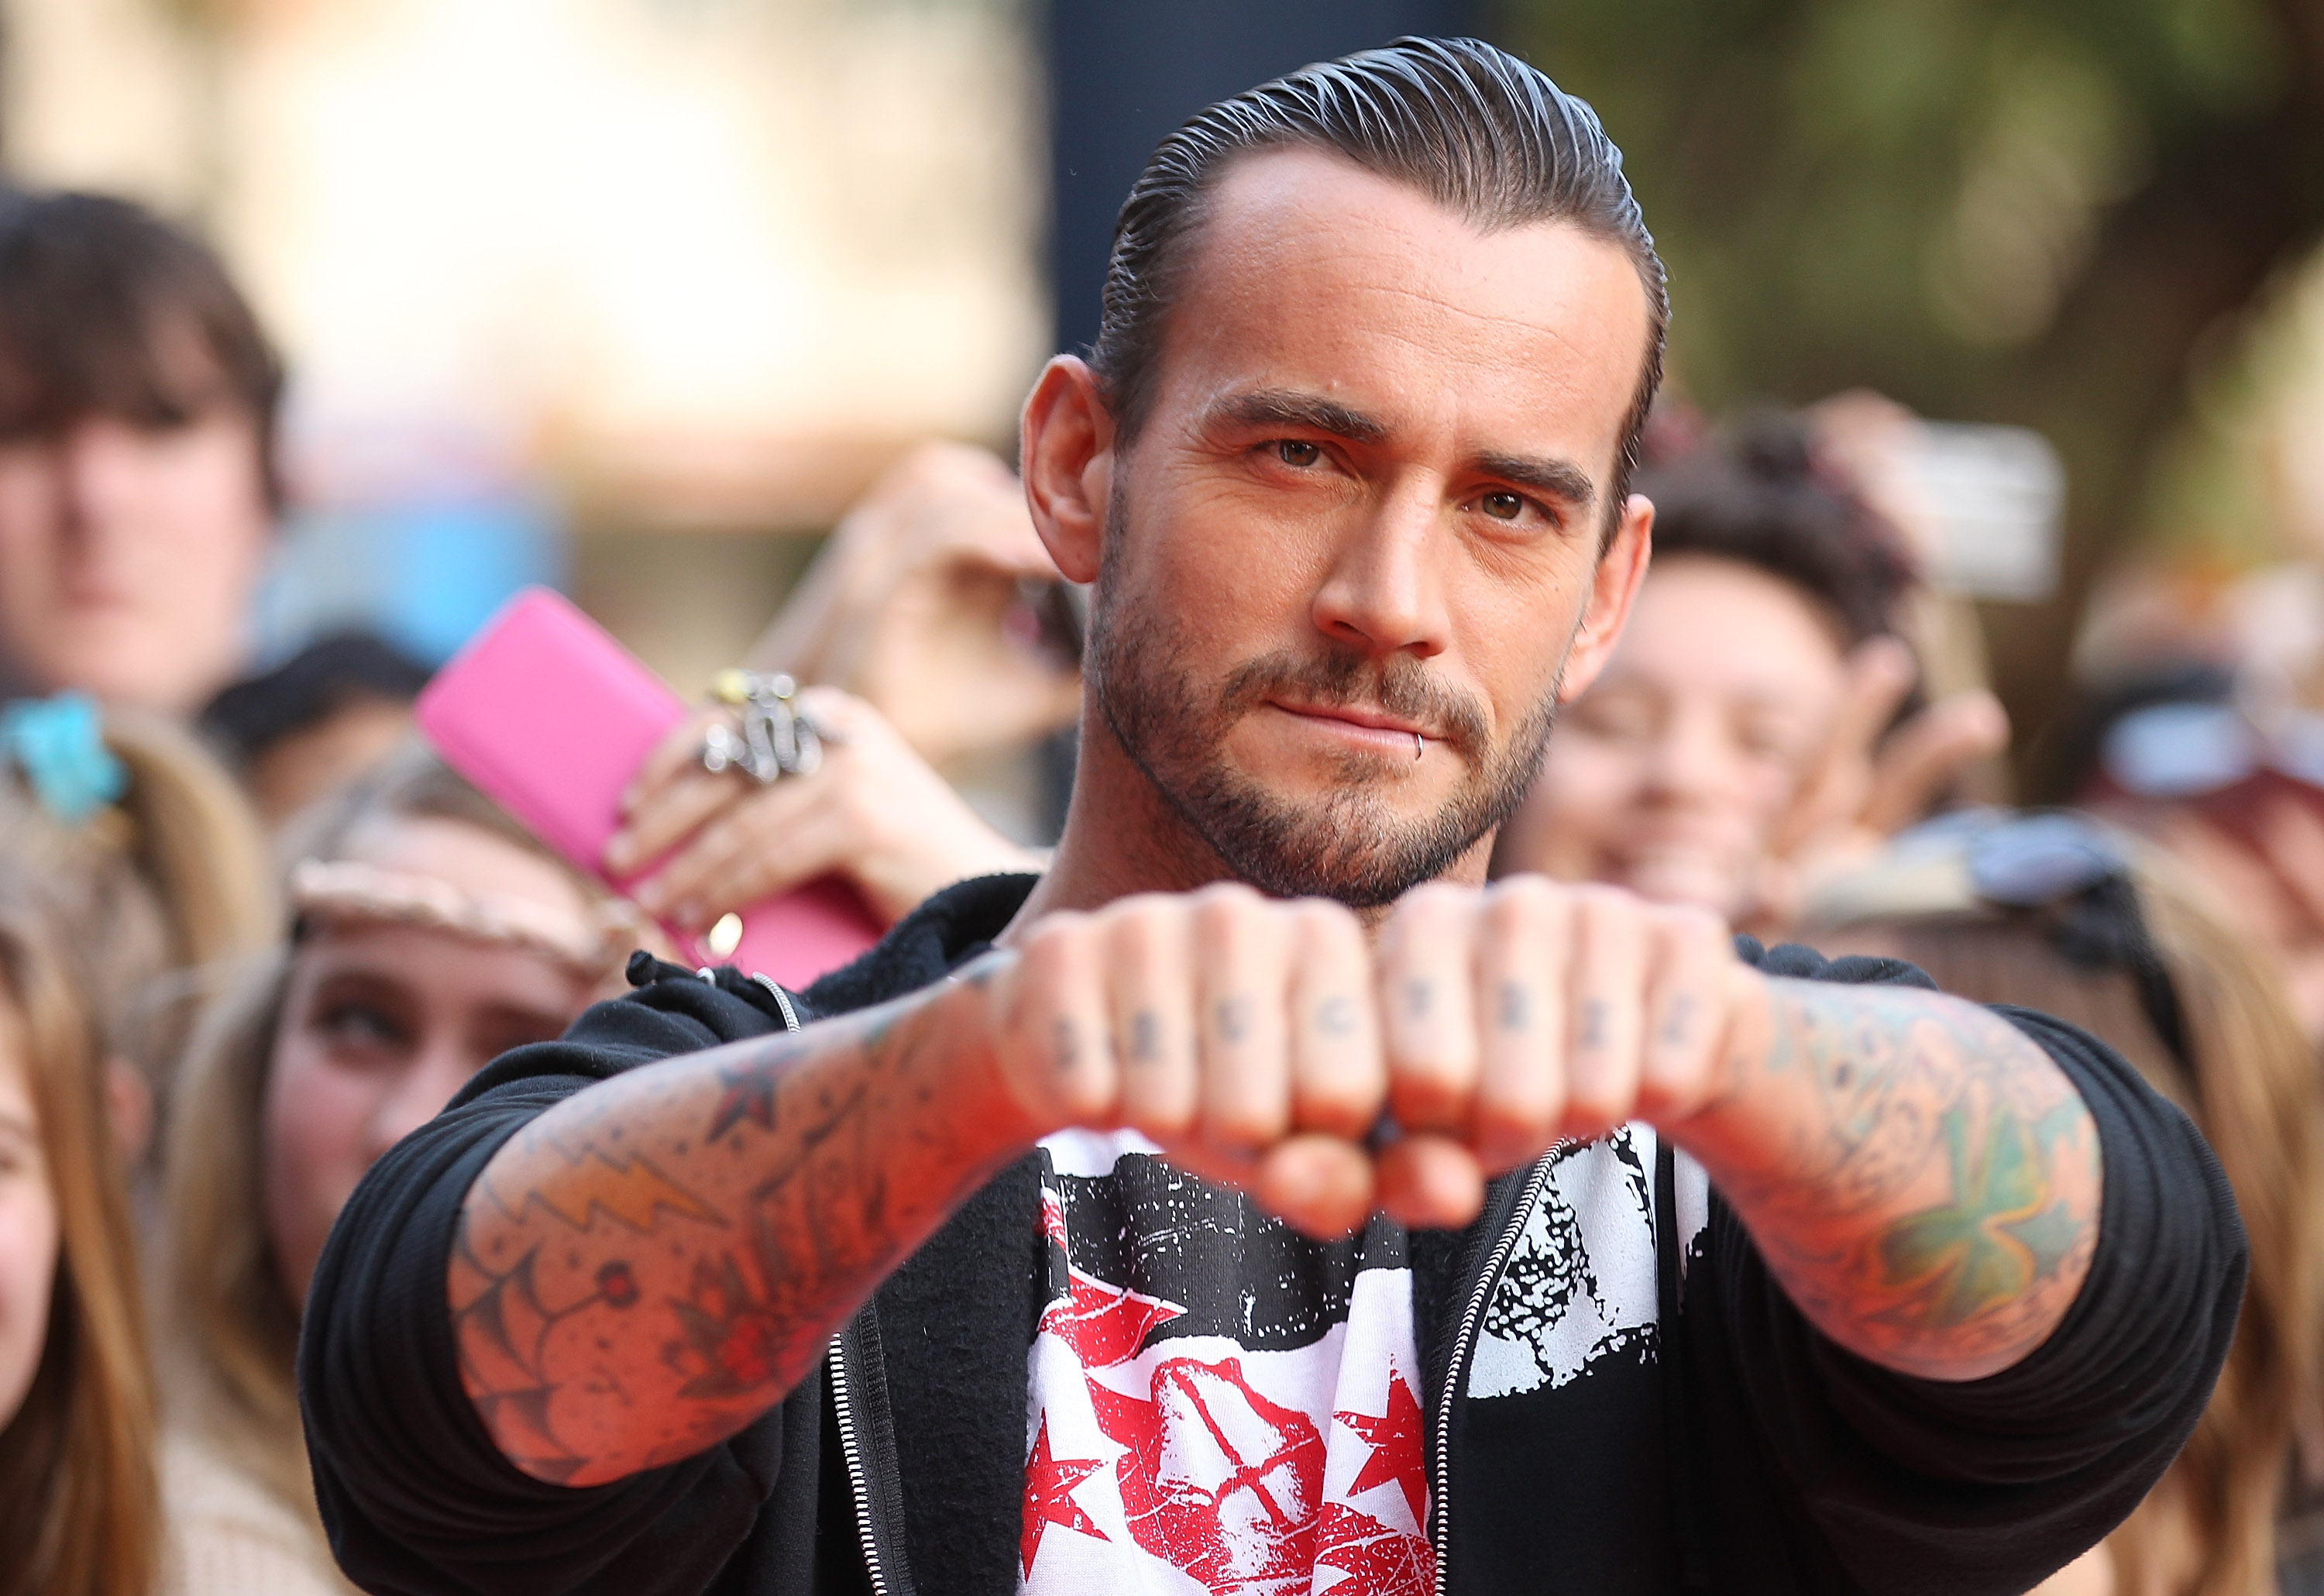 CM Punk to Have Back Surgery, UFC Confirms – Rolling Stone